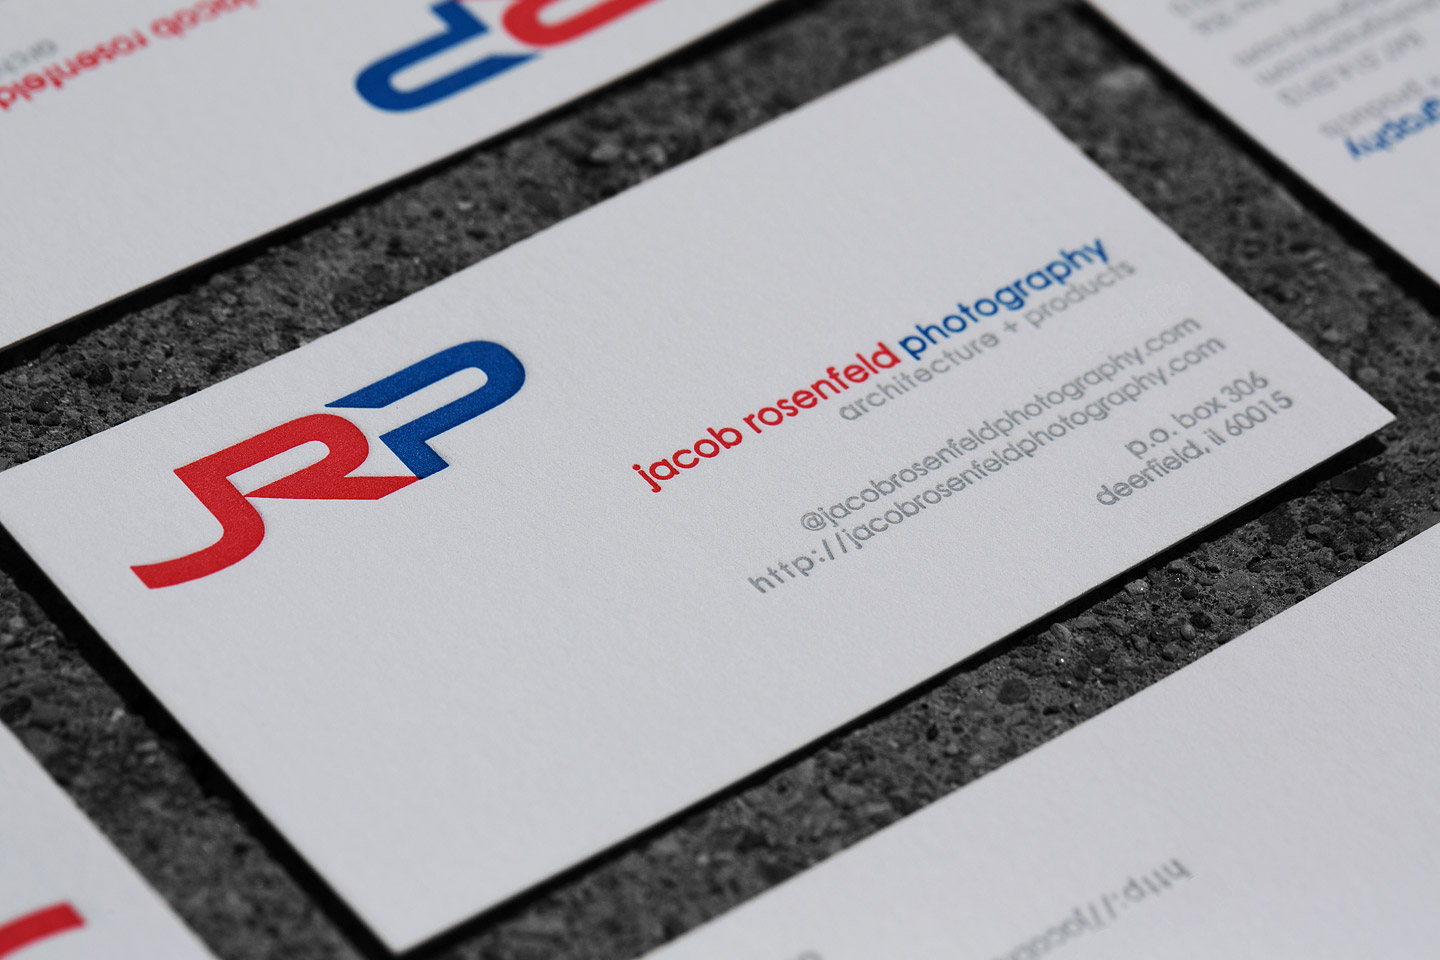 JRP letterpress business card close-up